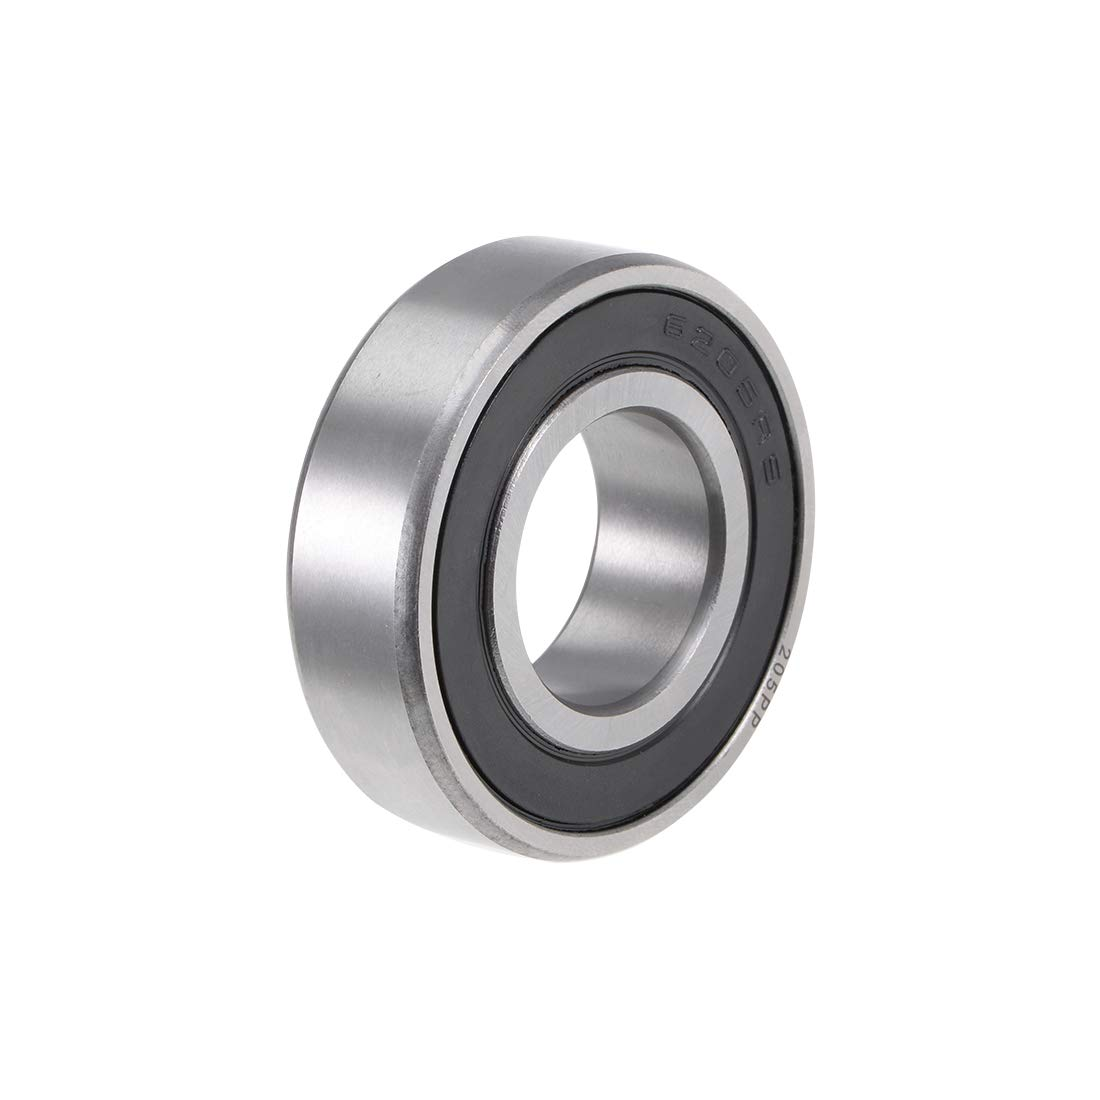 uxcell 6005-2RS Deep Groove Ball Bearing 25x47x12mm Double Sealed Chrome Steel Bearings 1-Pack